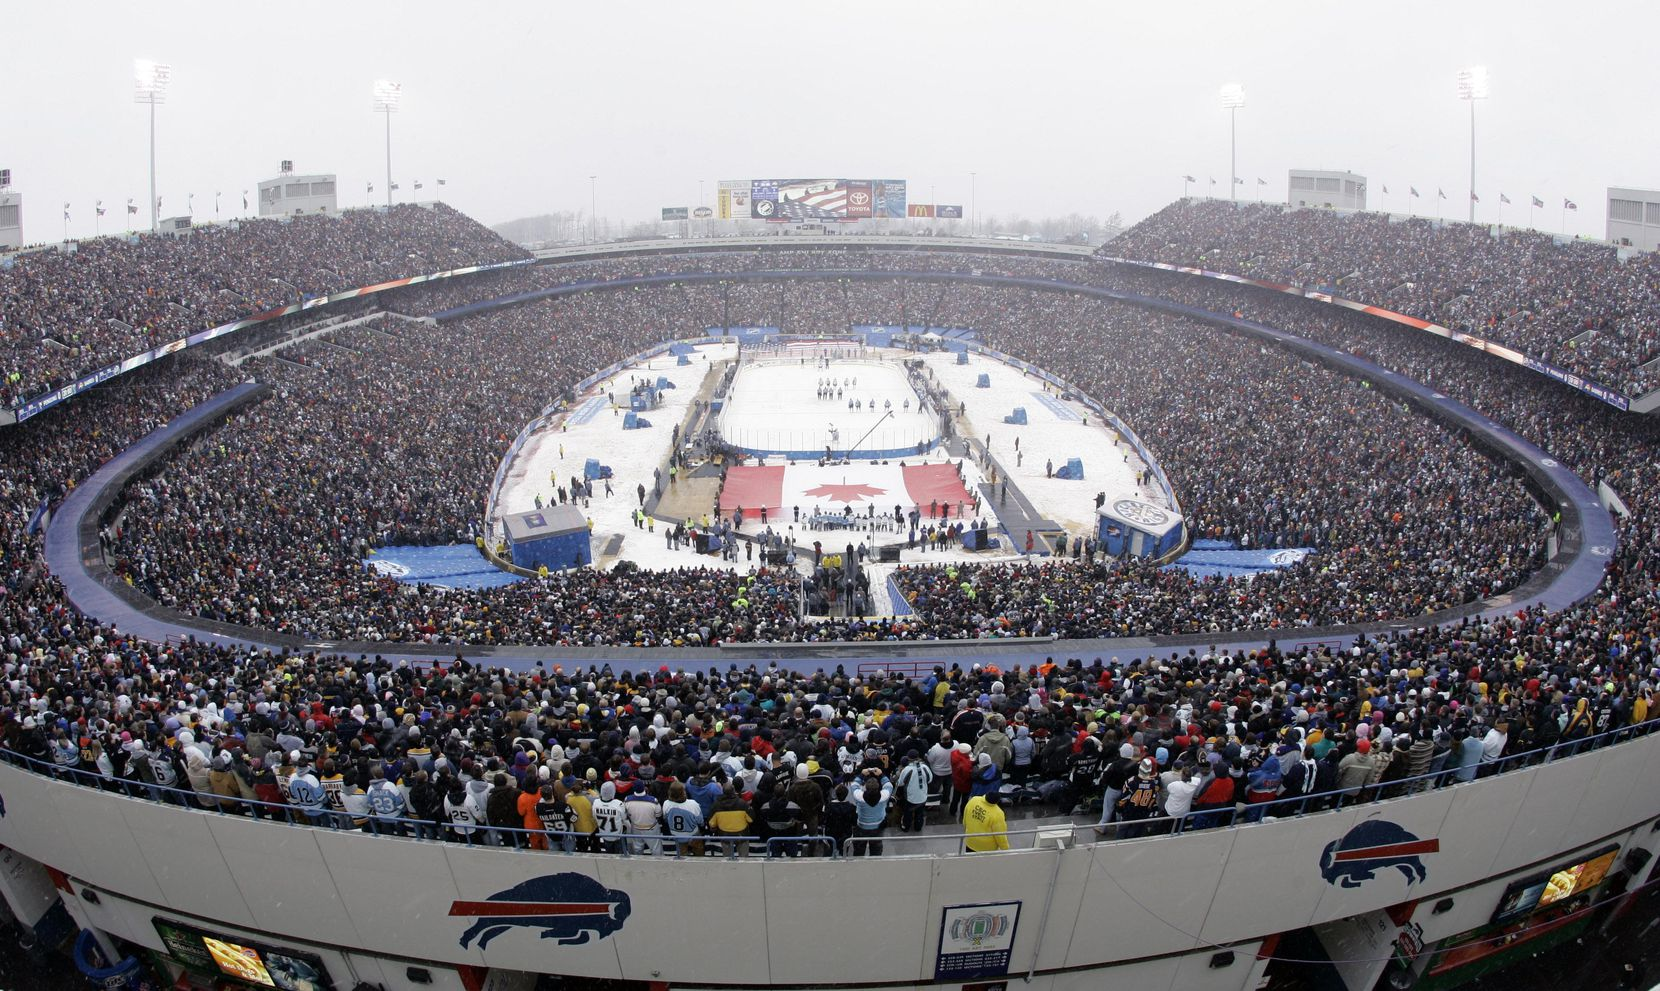 The Buffalo Sabres and Pittsburgh Penguins played during a steady snowfall in the 2008 NHL Winter Classic outdoor hockey game at Ralph Wilson Stadium in Orchard Park, N.Y.